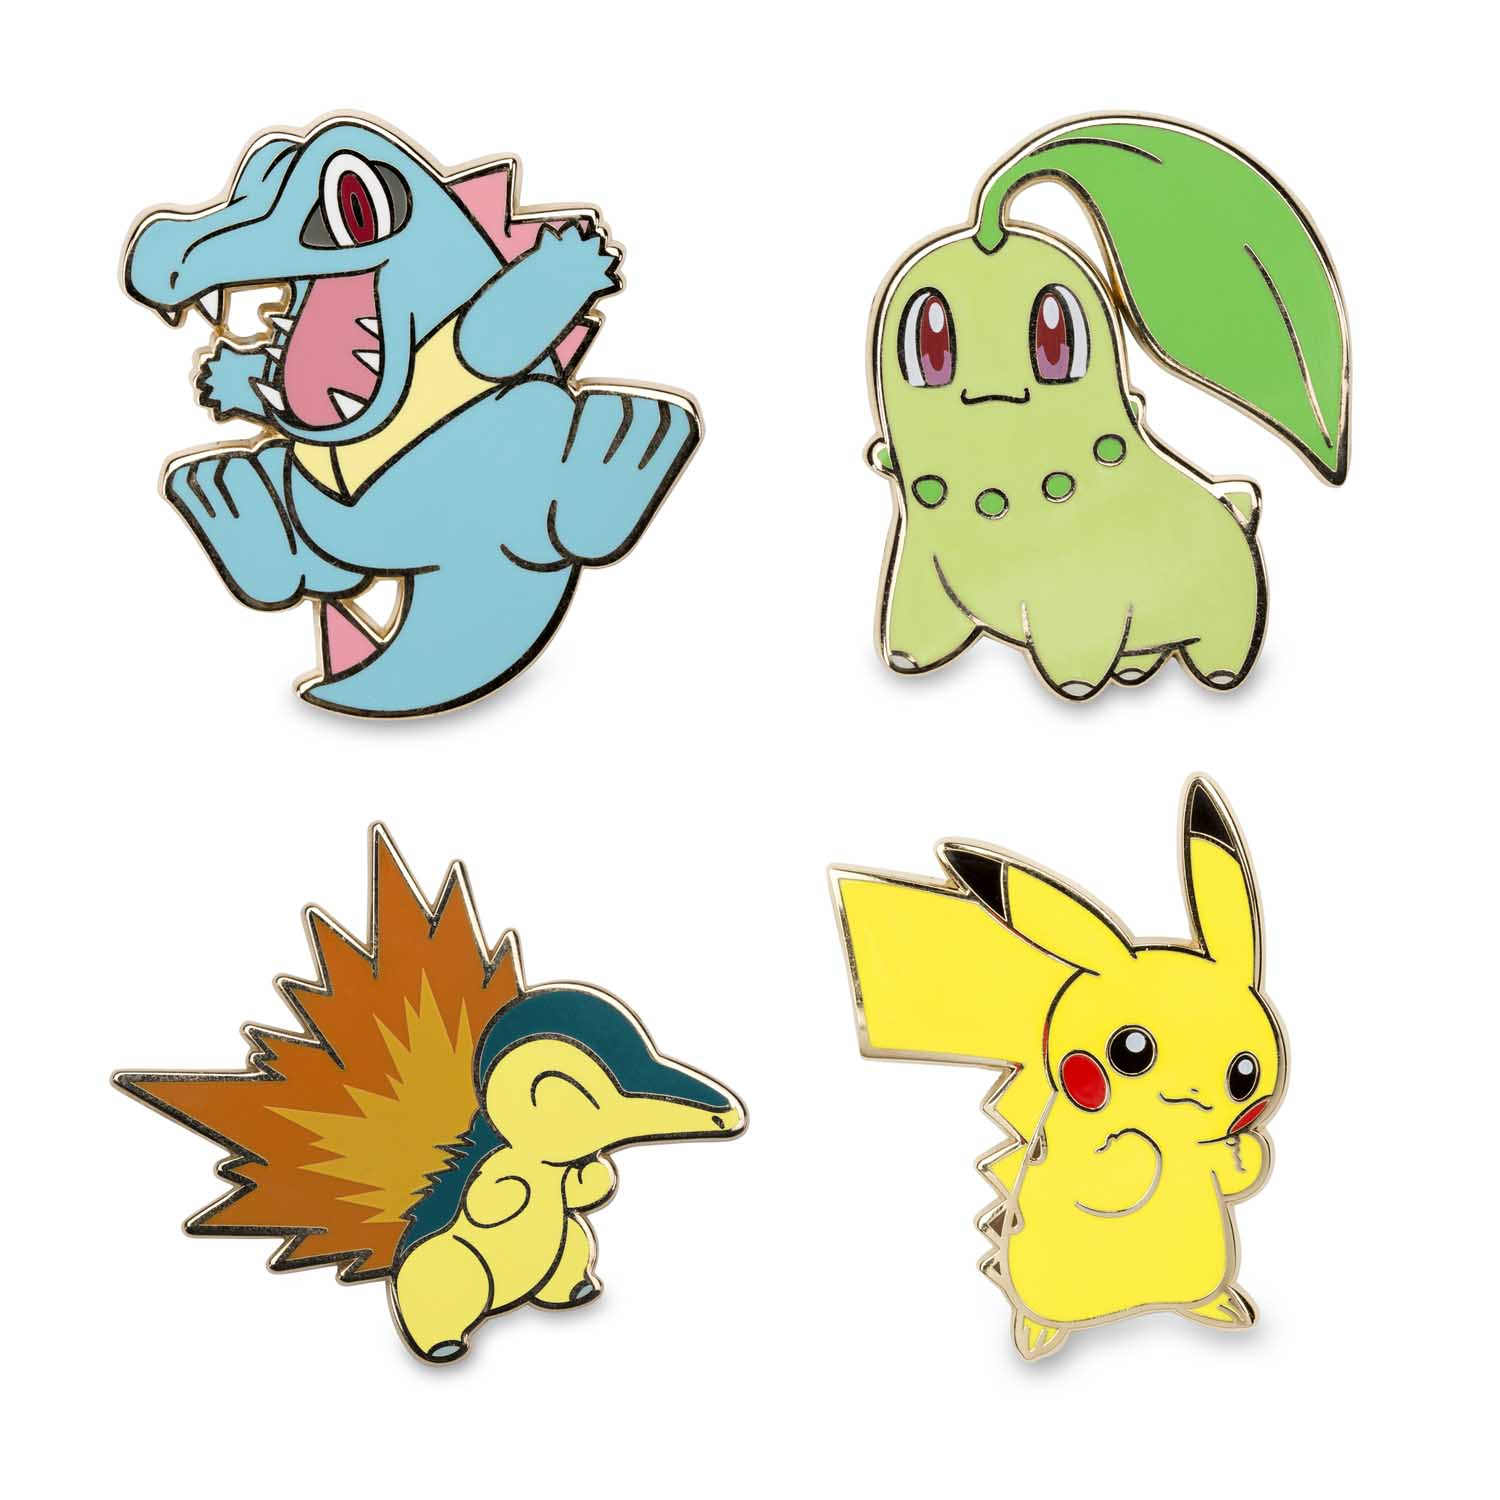 Image For Pikachu Chikorita Cyndaquil Totodile Pokemon Pins From Center